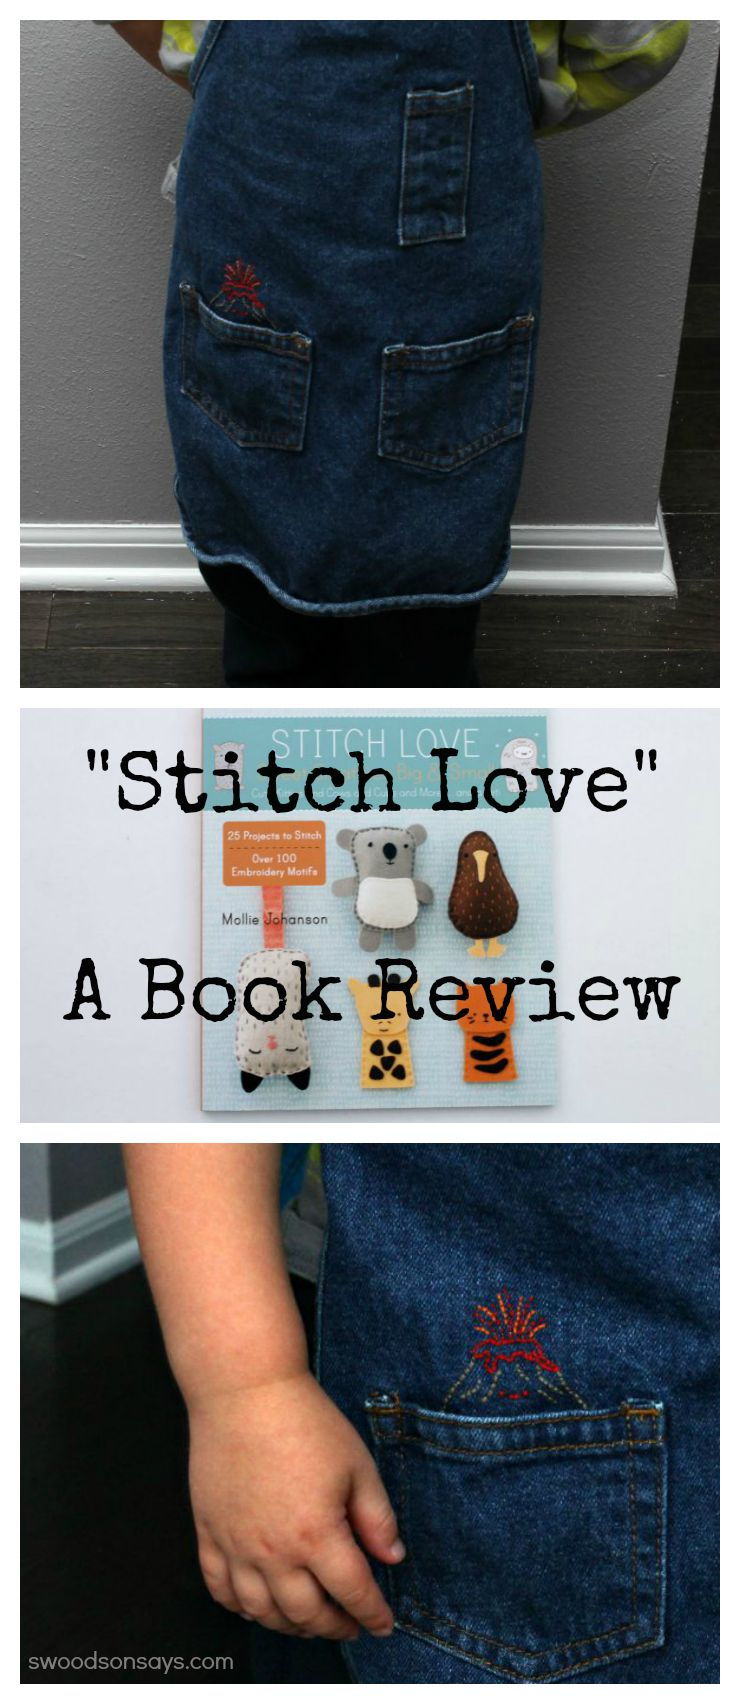 Stitch Love by Mollie Johanson - an embroidery book review on Swoodsonsays.com